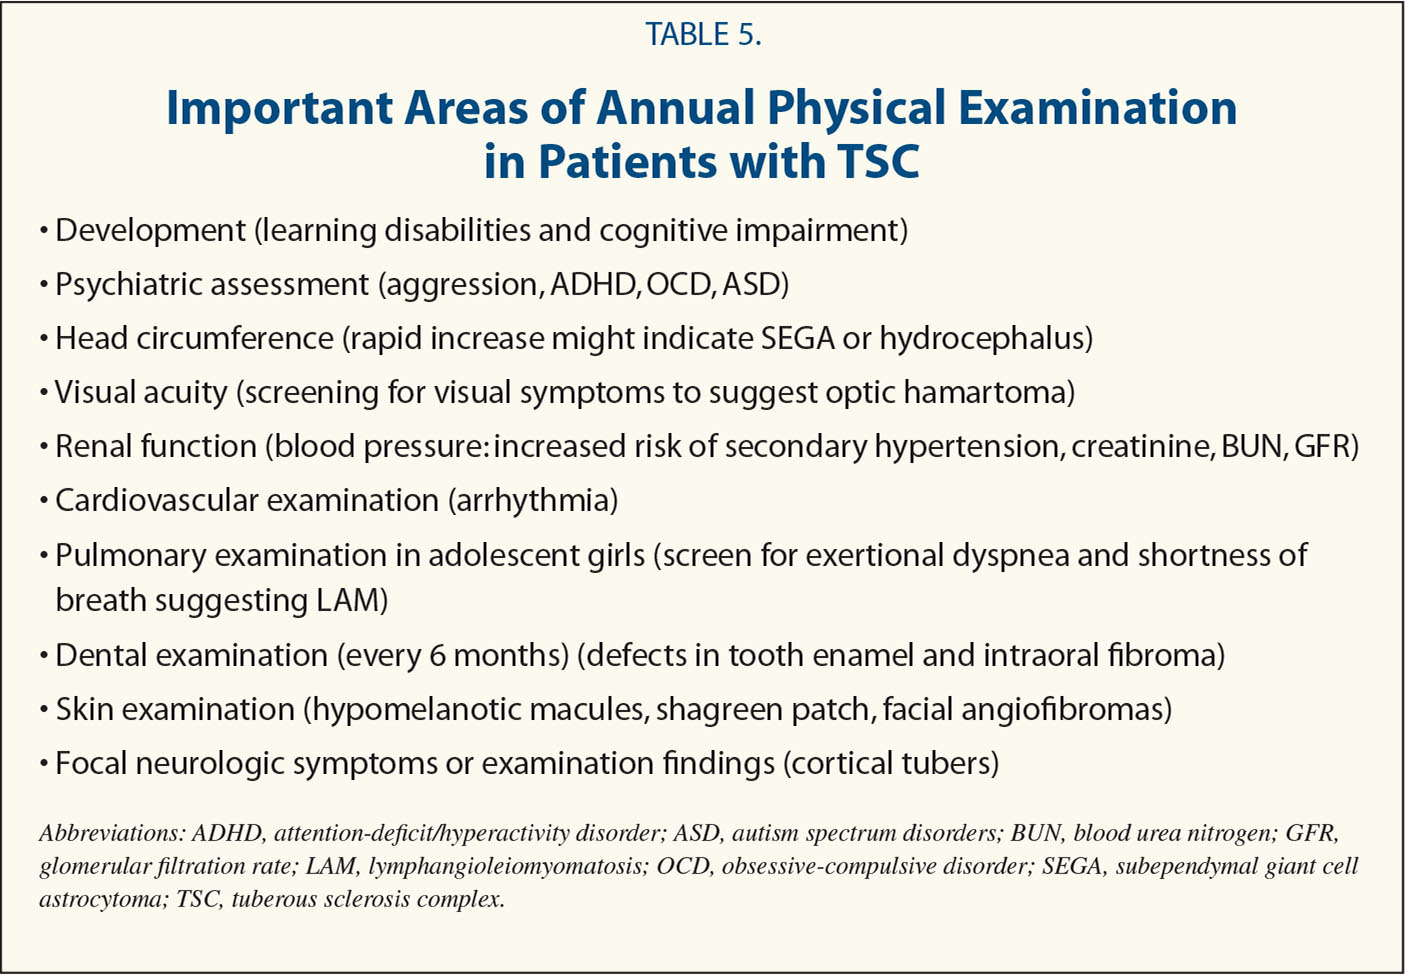 Important Areas of Annual Physical Examination in Patients with TSC